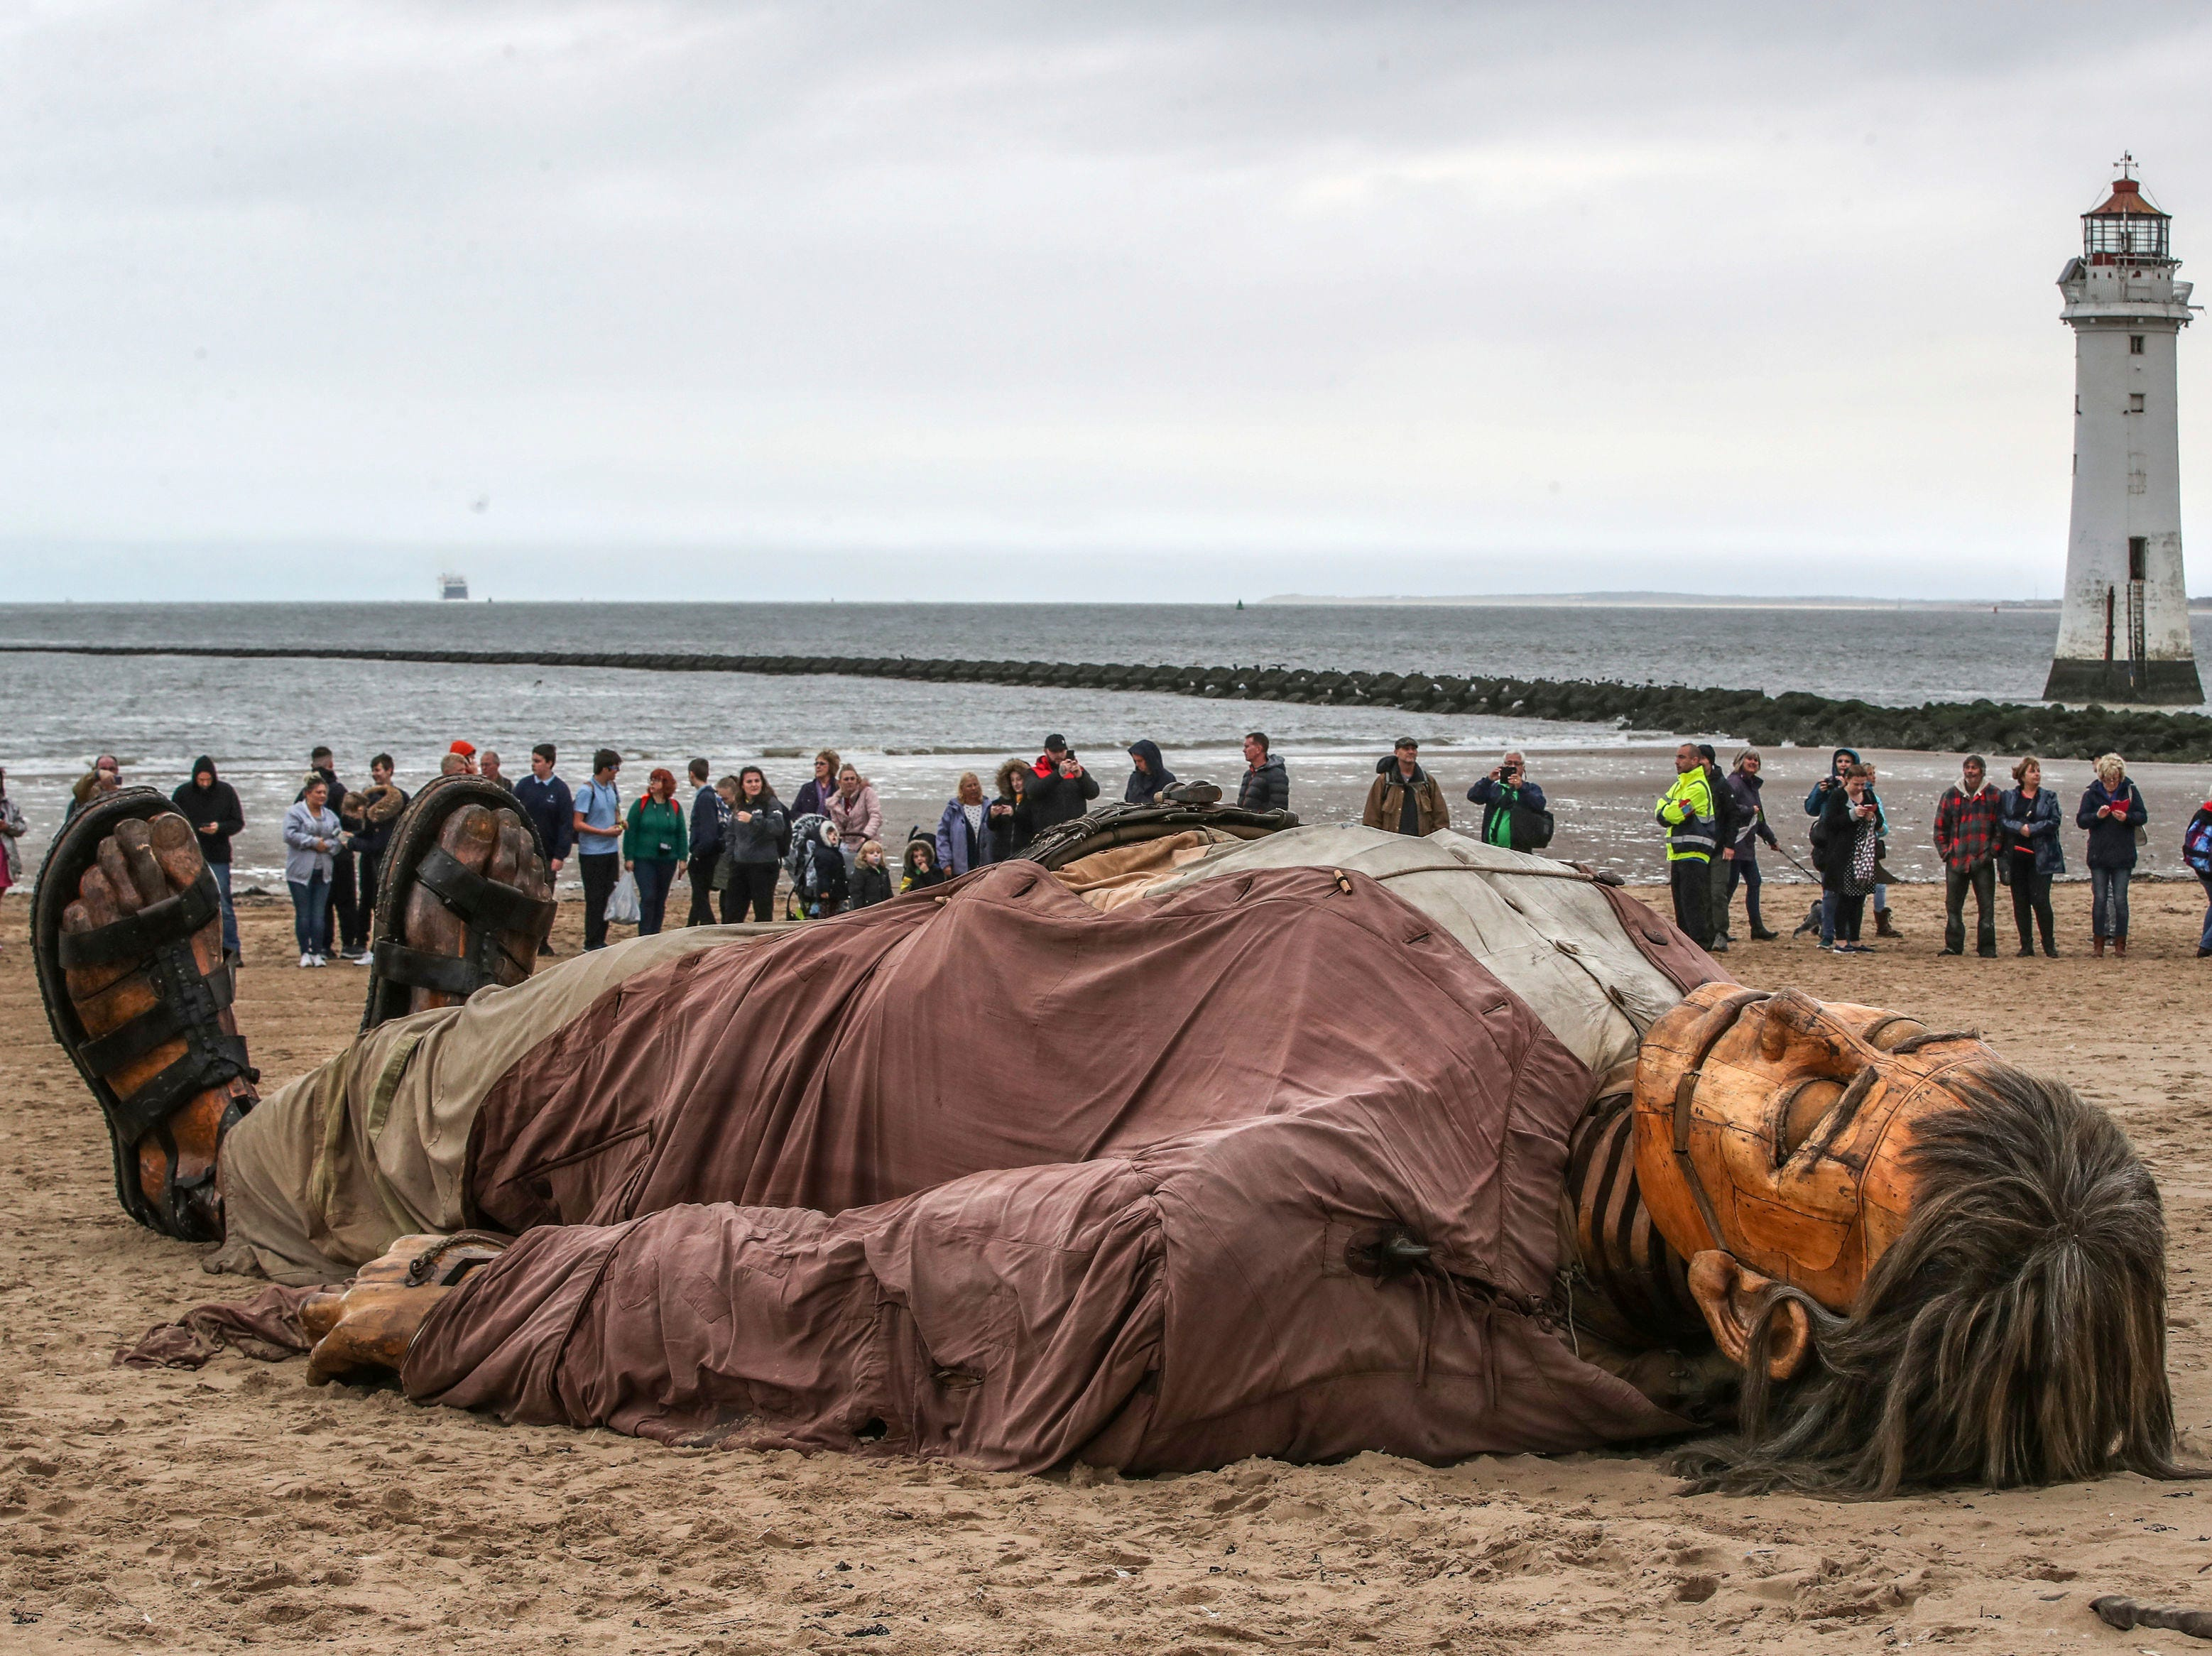 """Puppet """"Giant Man"""" lays on the beach in New Brighton, part of the Royal De Luxe Giant Spectacular over the weekend, in Wirral, England, Friday, Oct. 5, 2018."""